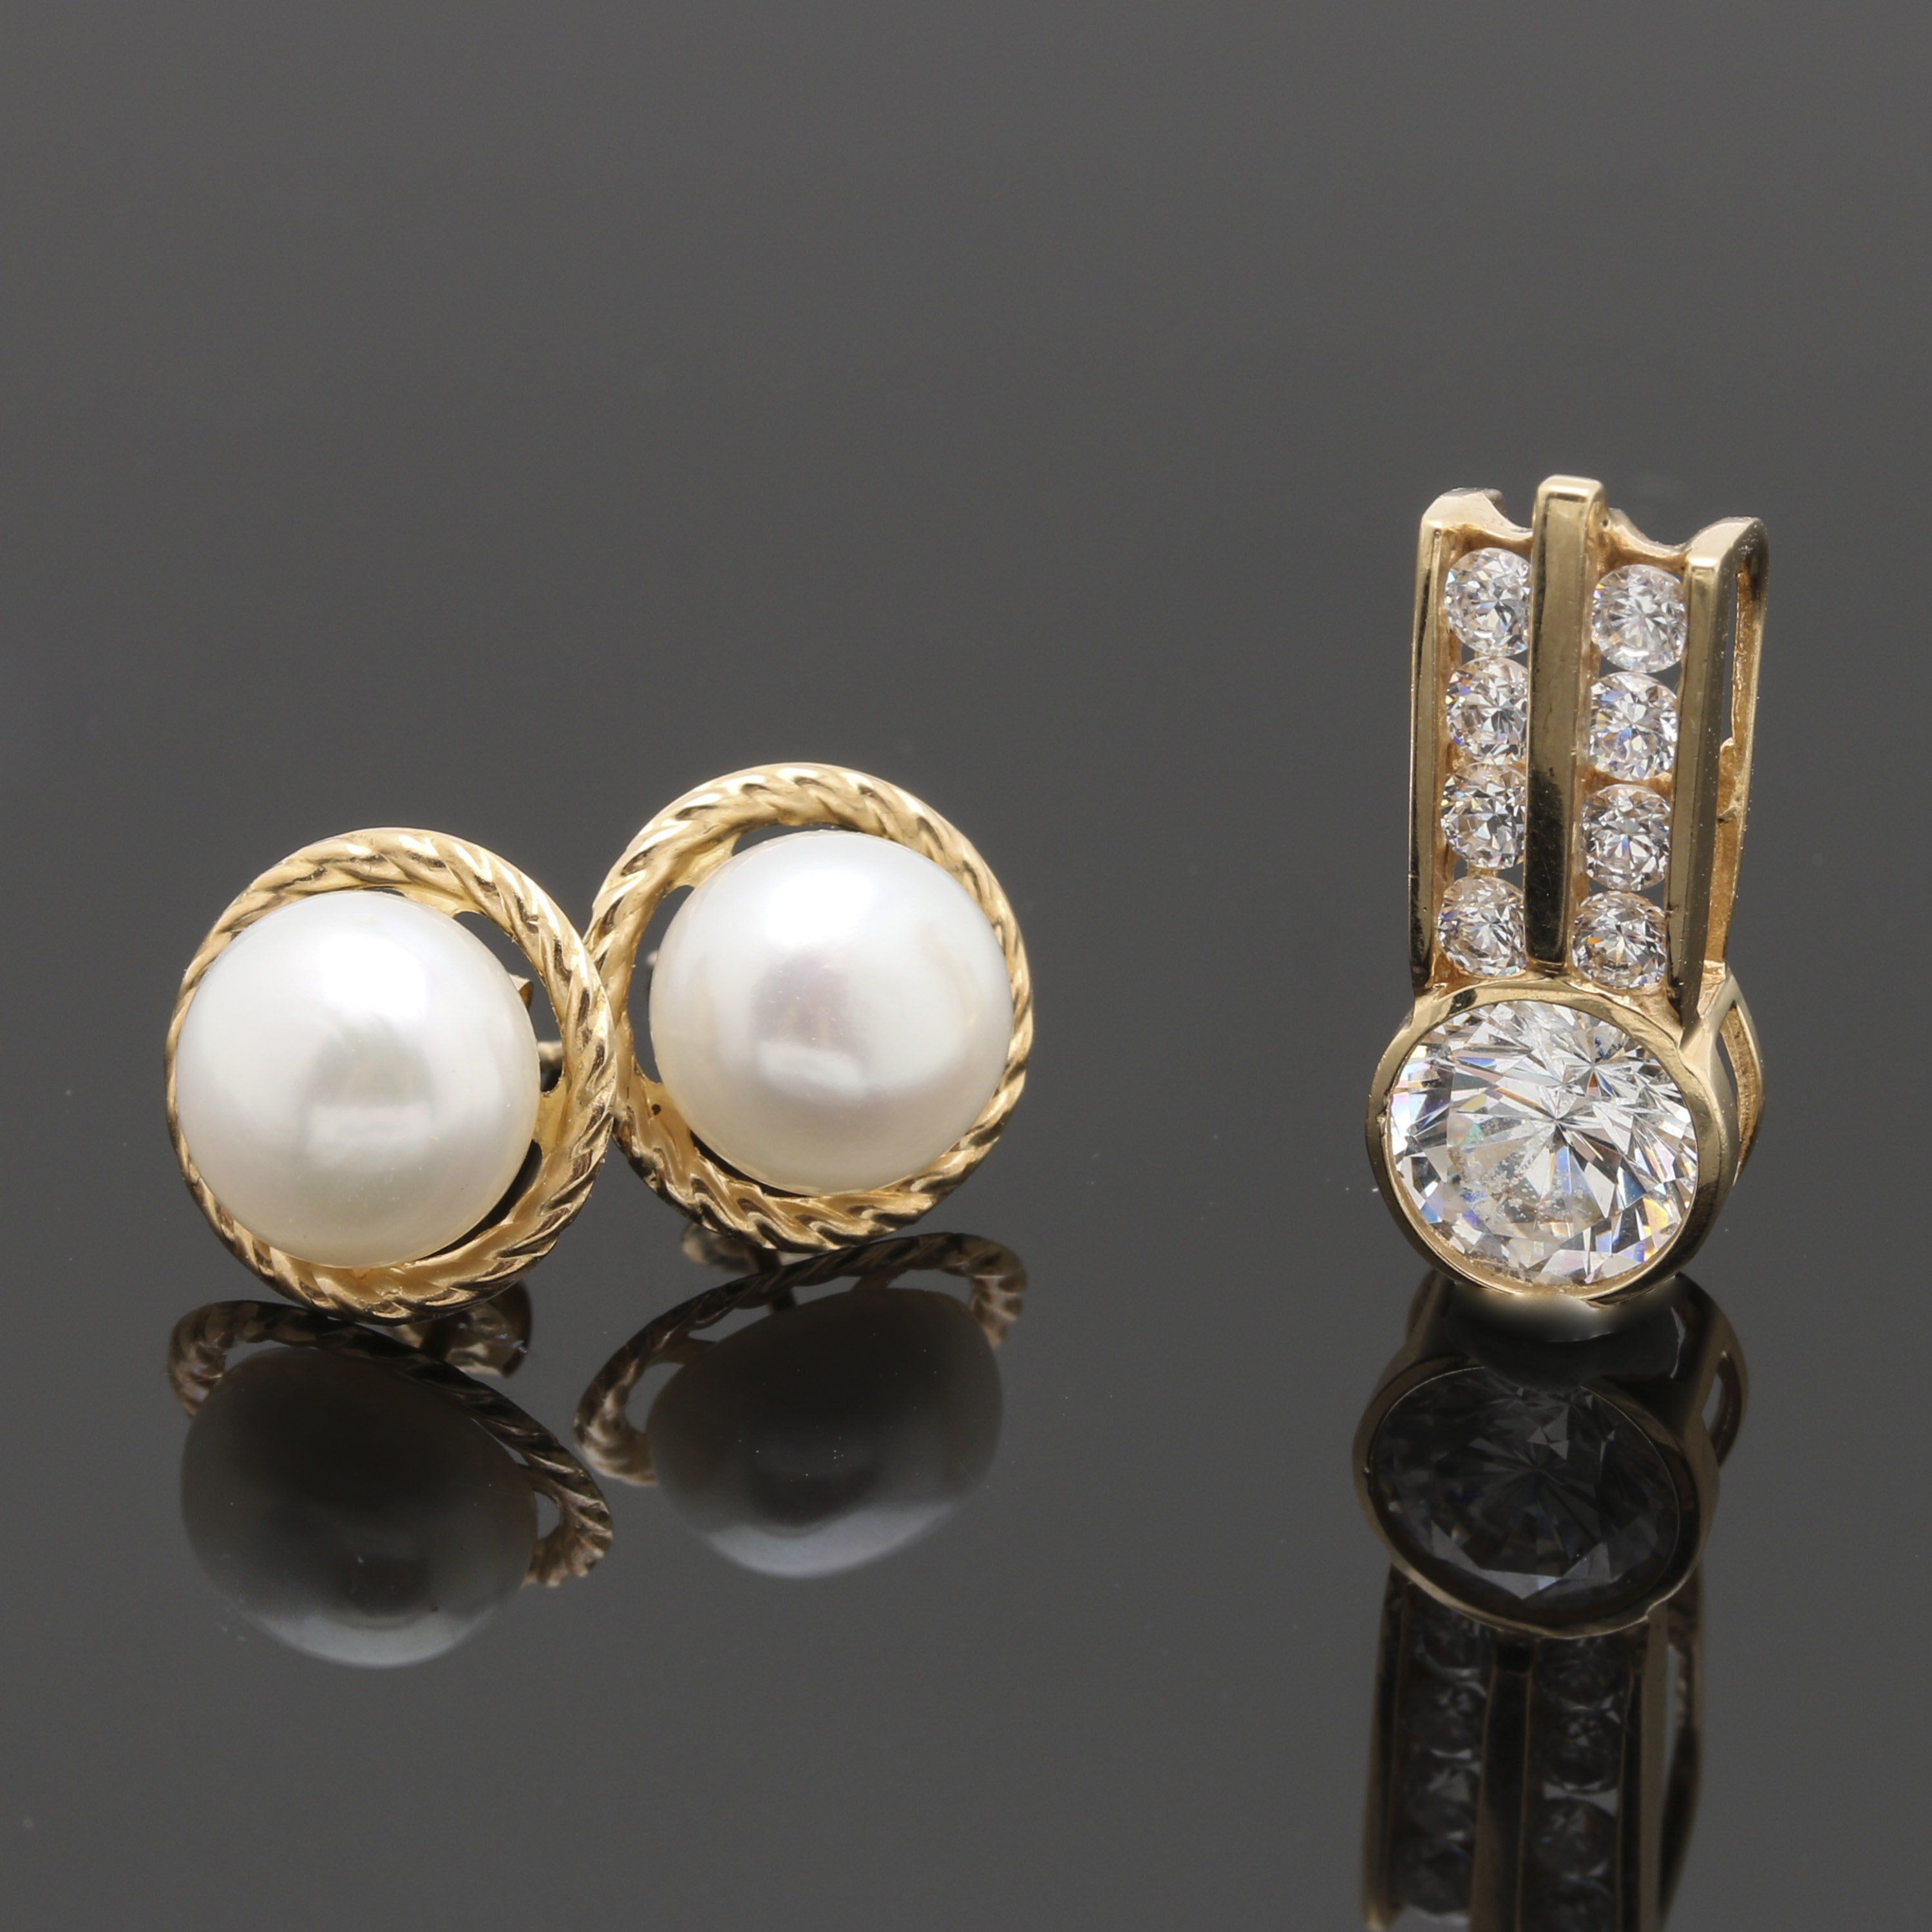 14K Yellow Gold Earrings and Pendant